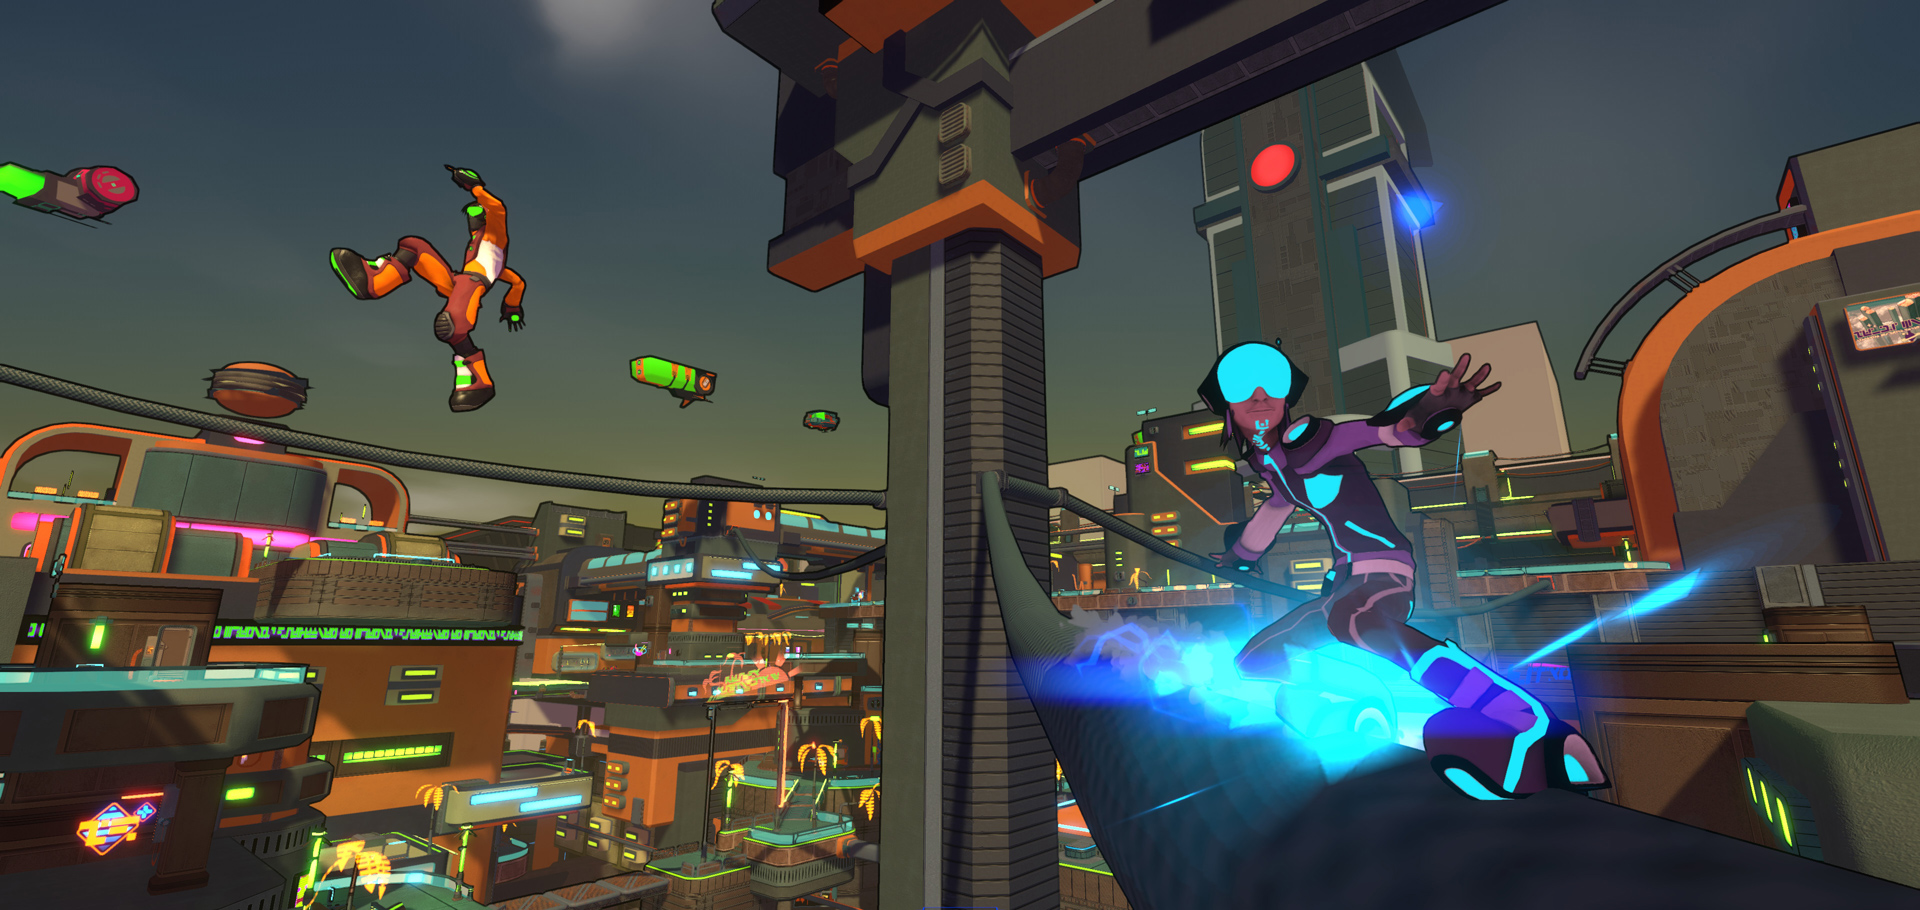 The composer of Jet Set Radio has new music for Hover